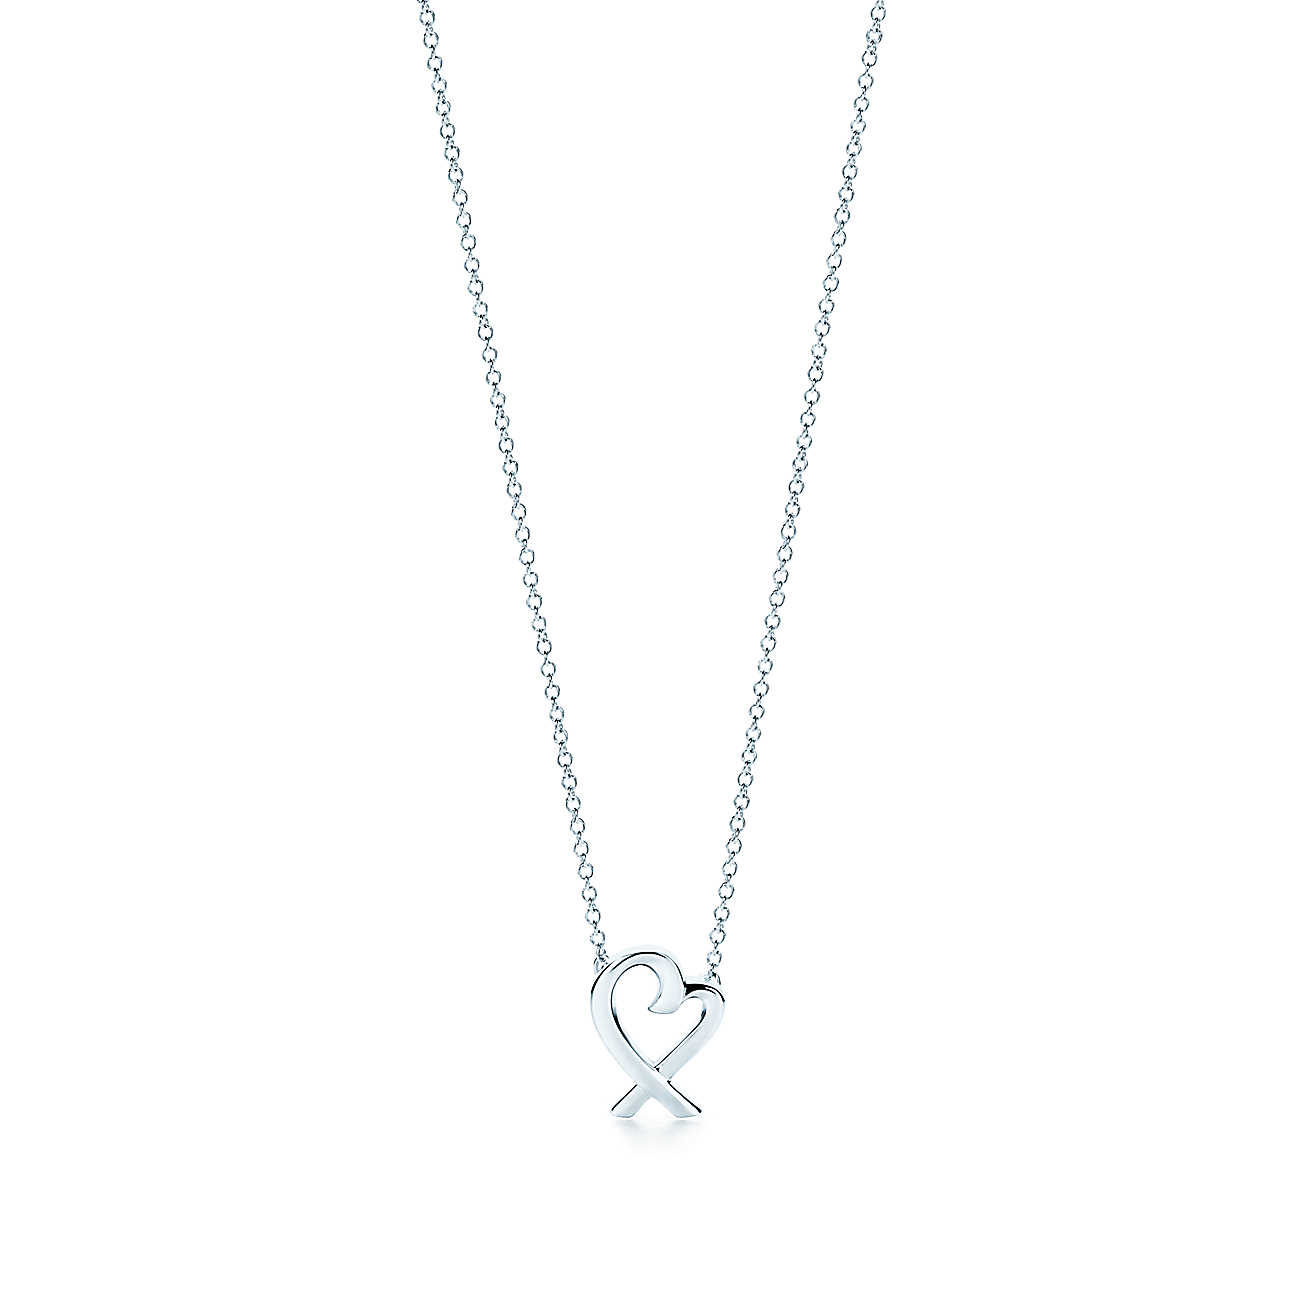 52994d81c89a4 Tiffany & Co. Paloma Picasso Sterling Silver Loving Heart Pendant Necklace